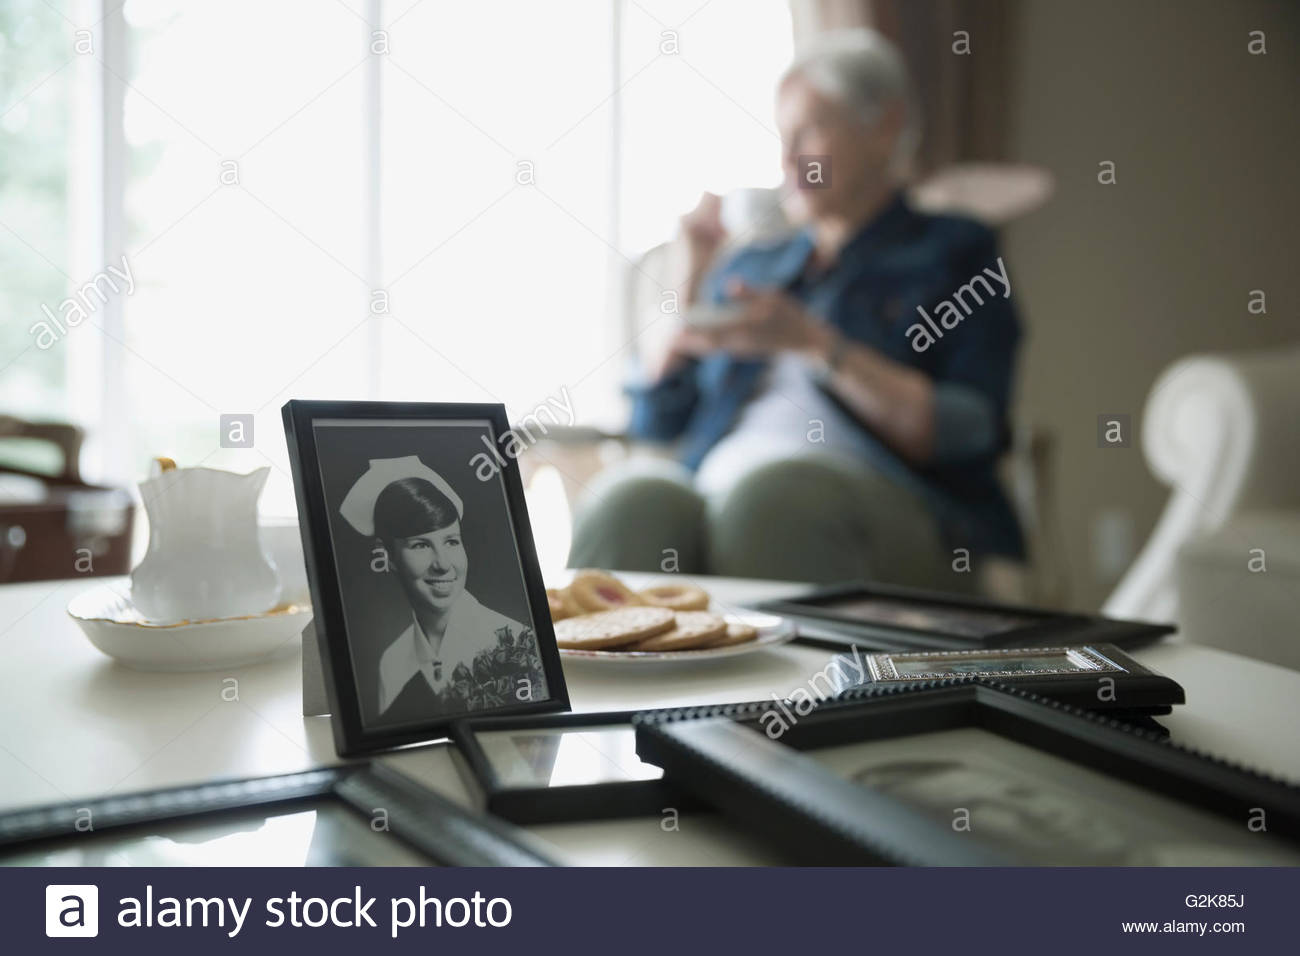 Old photograph of woman with senior woman in background - Stock Image